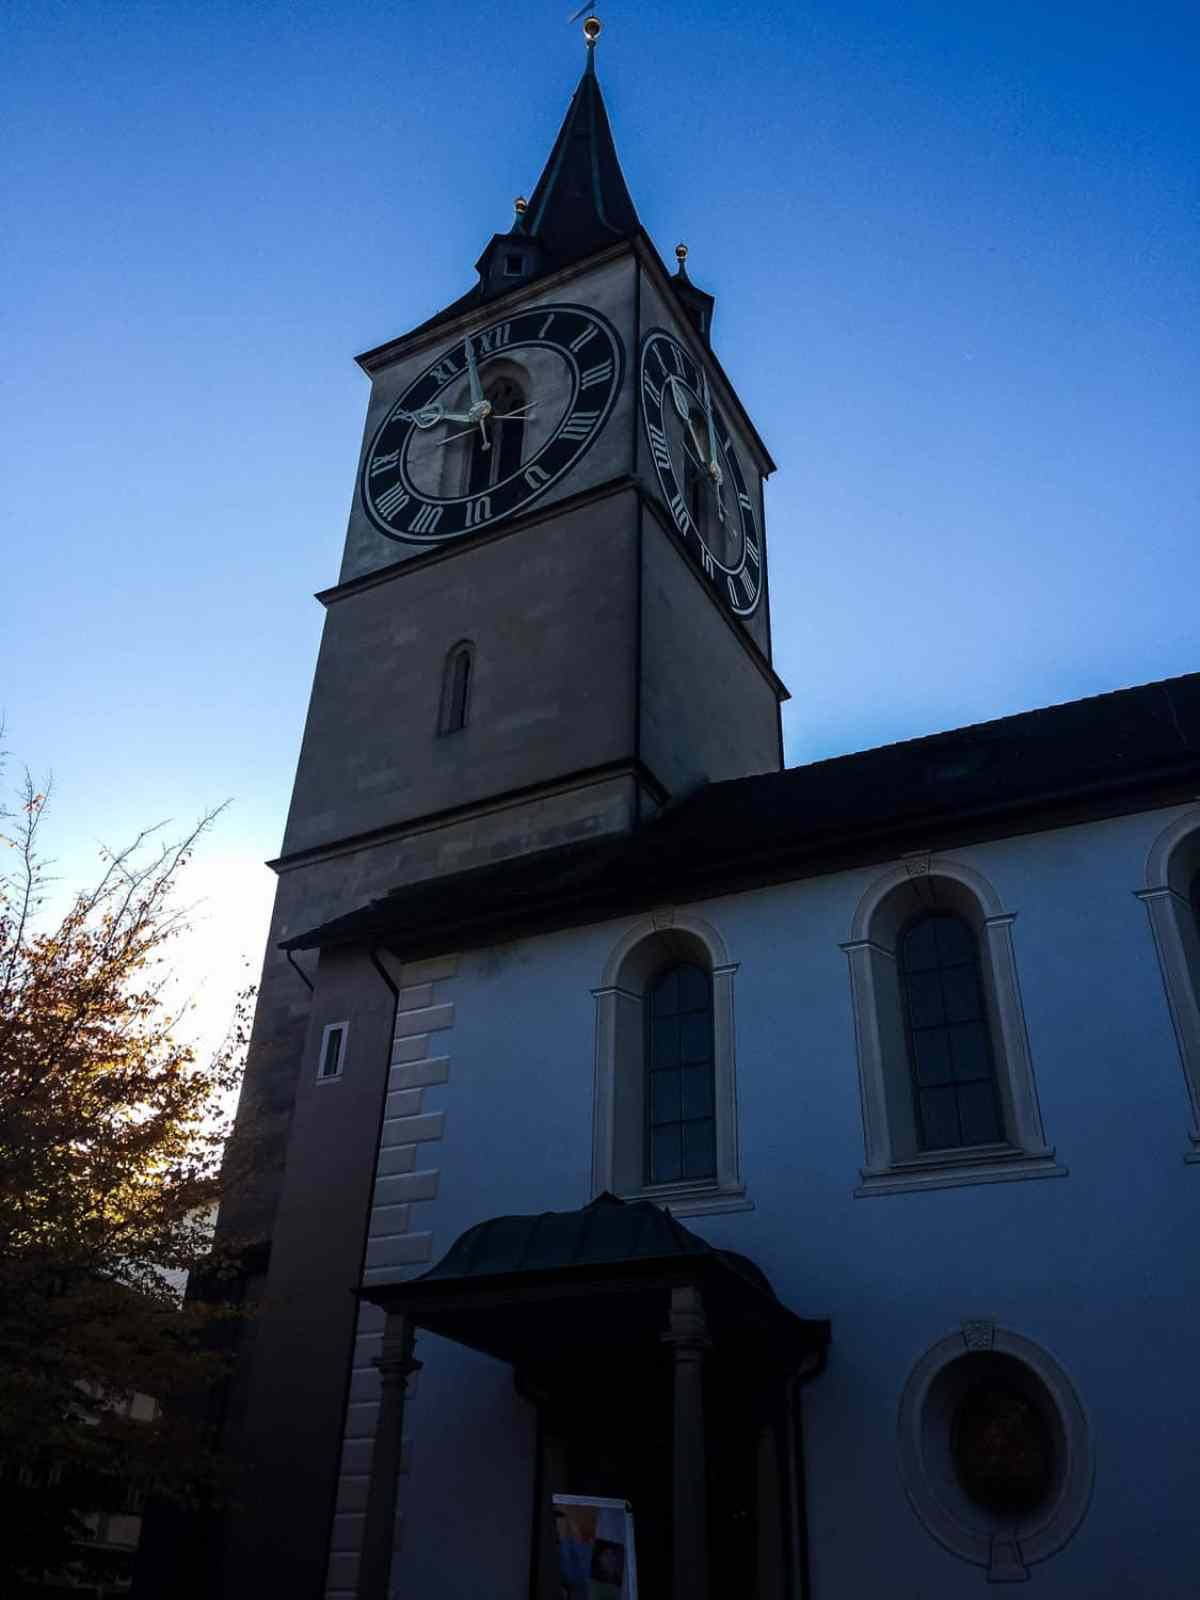 zurich in one day - city clock tower at dawn